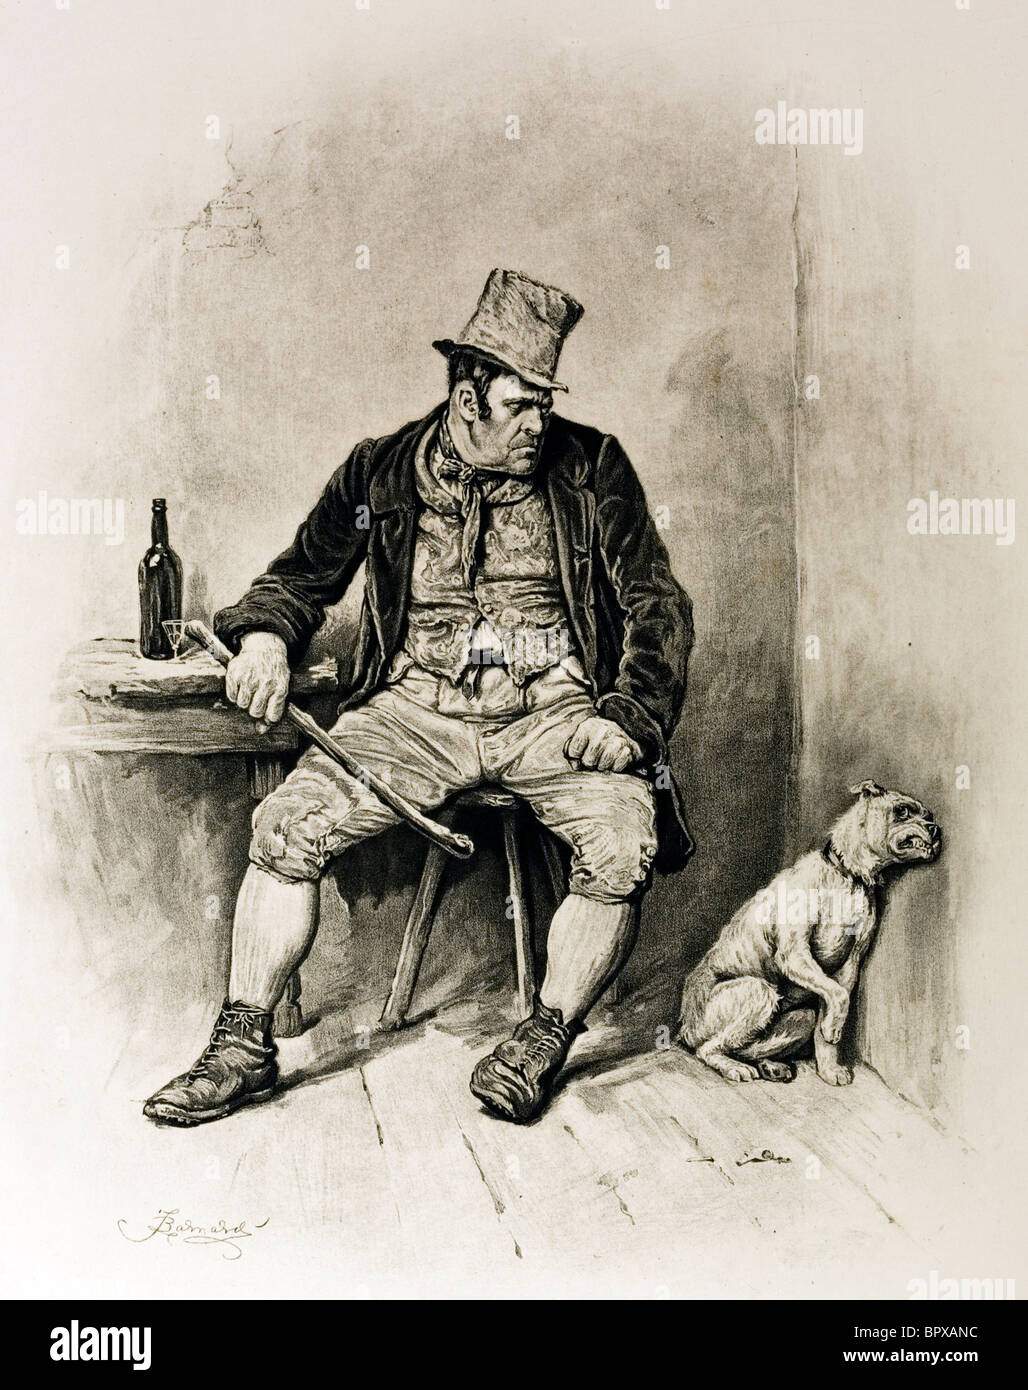 oliver sykes stock photos oliver sykes stock images alamy character sketch of bill sykes from oliver twist by charles dickens artist frederick barnard